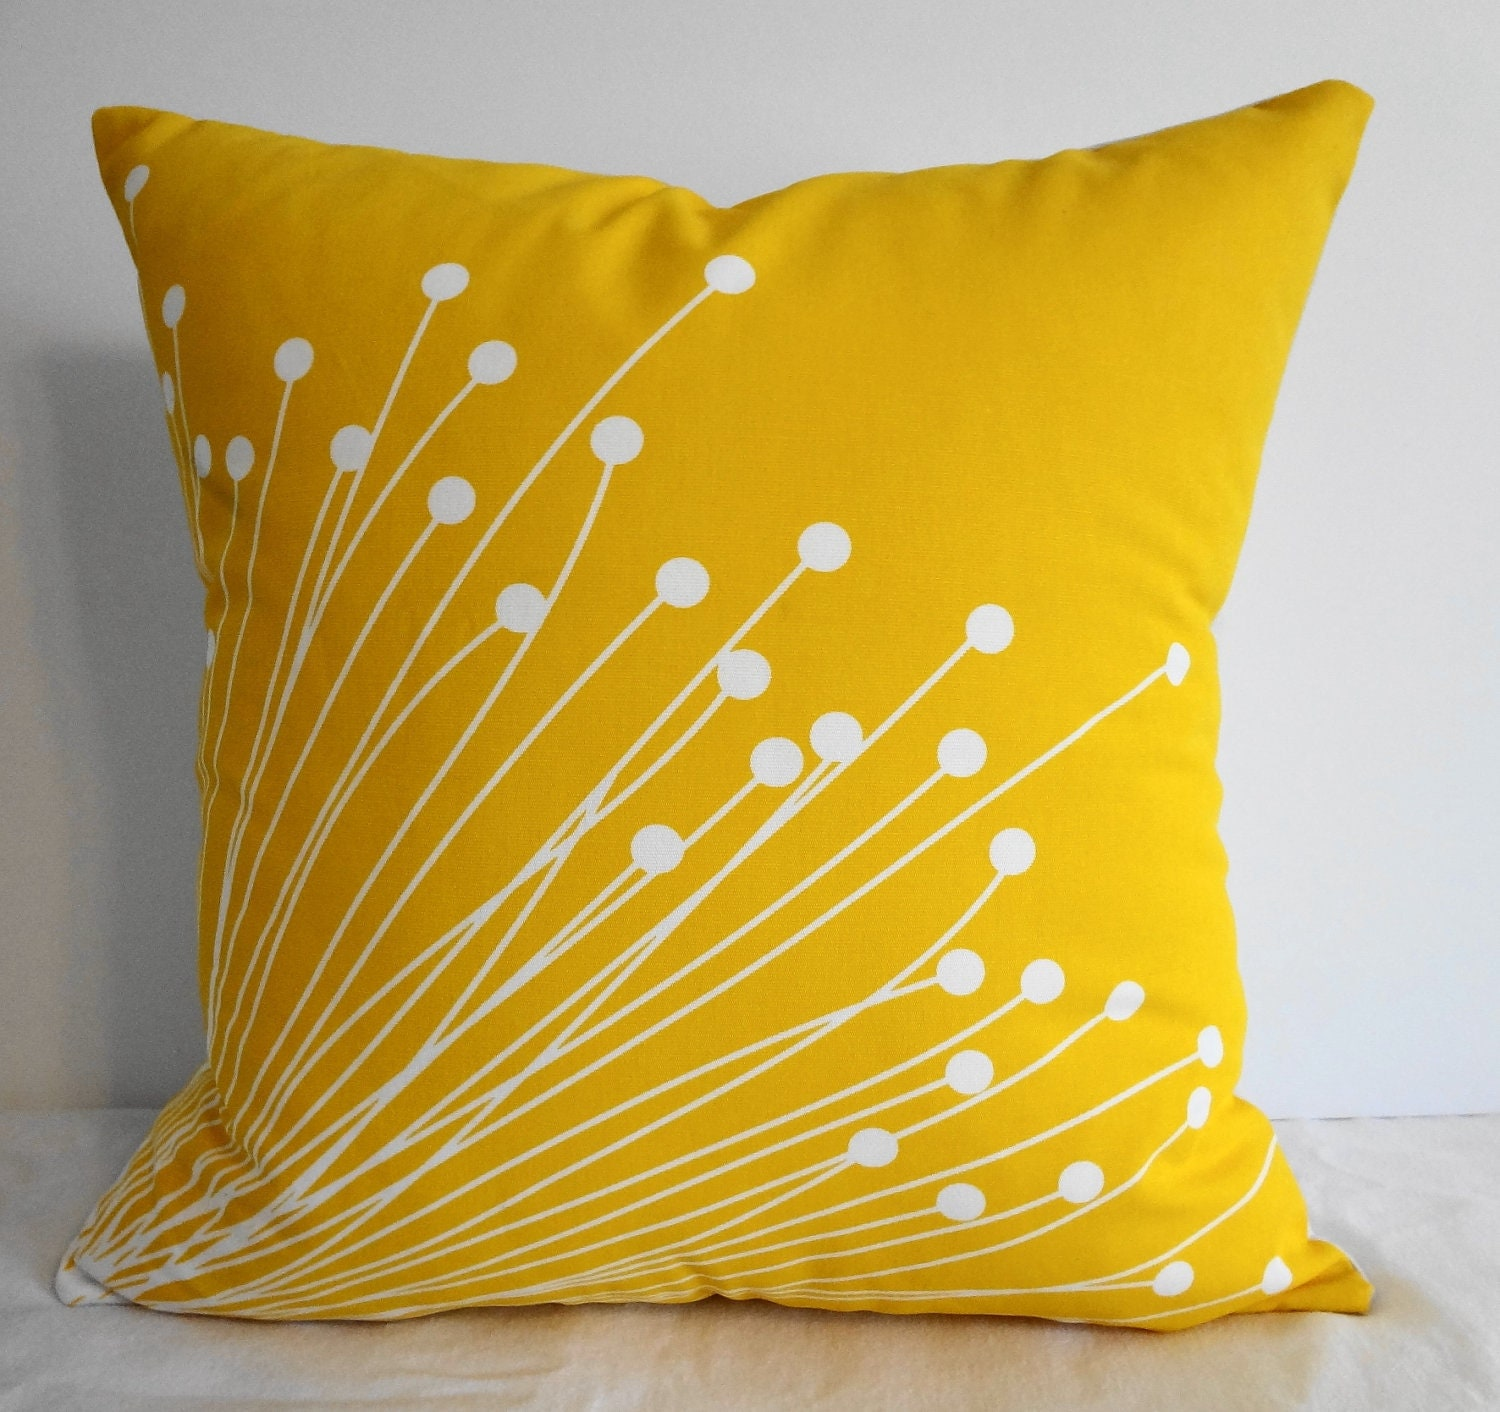 Images For Decorative Pillows : Starburst Yellow Pillow Covers Decorative Throw Pillow